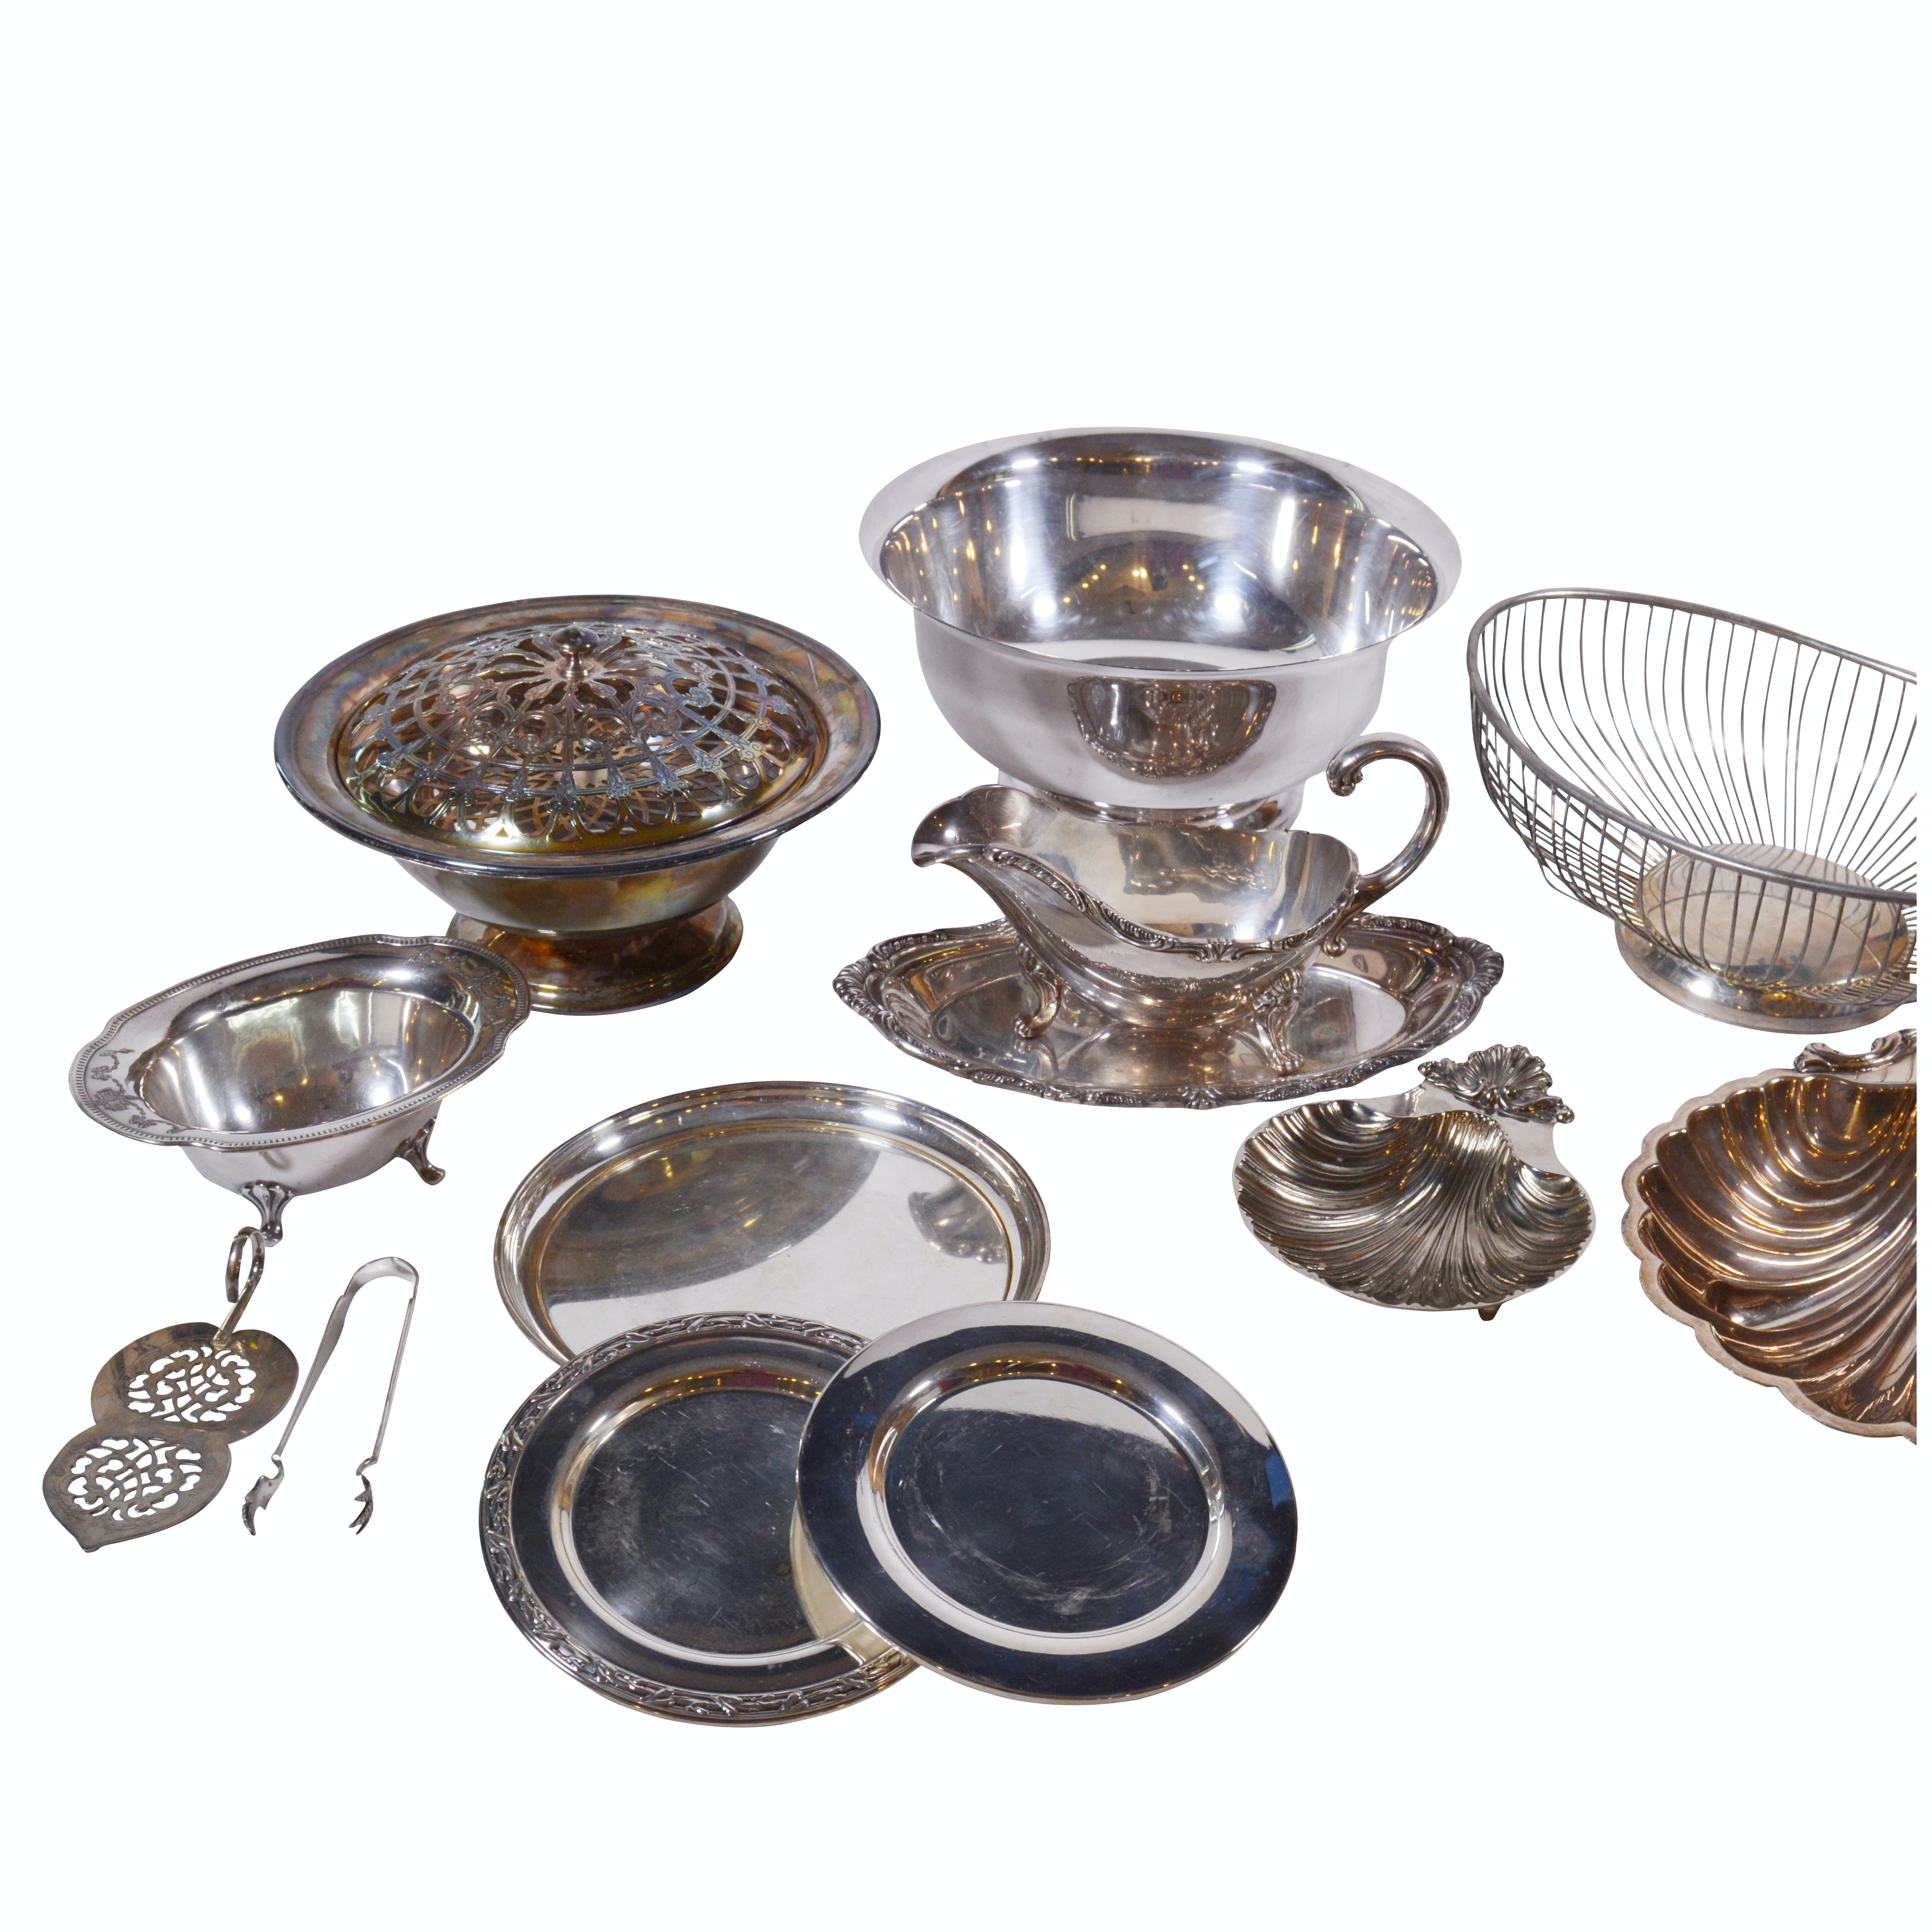 Paul Revere Reproduction Silver Plate Bowl and Other Silver Plate